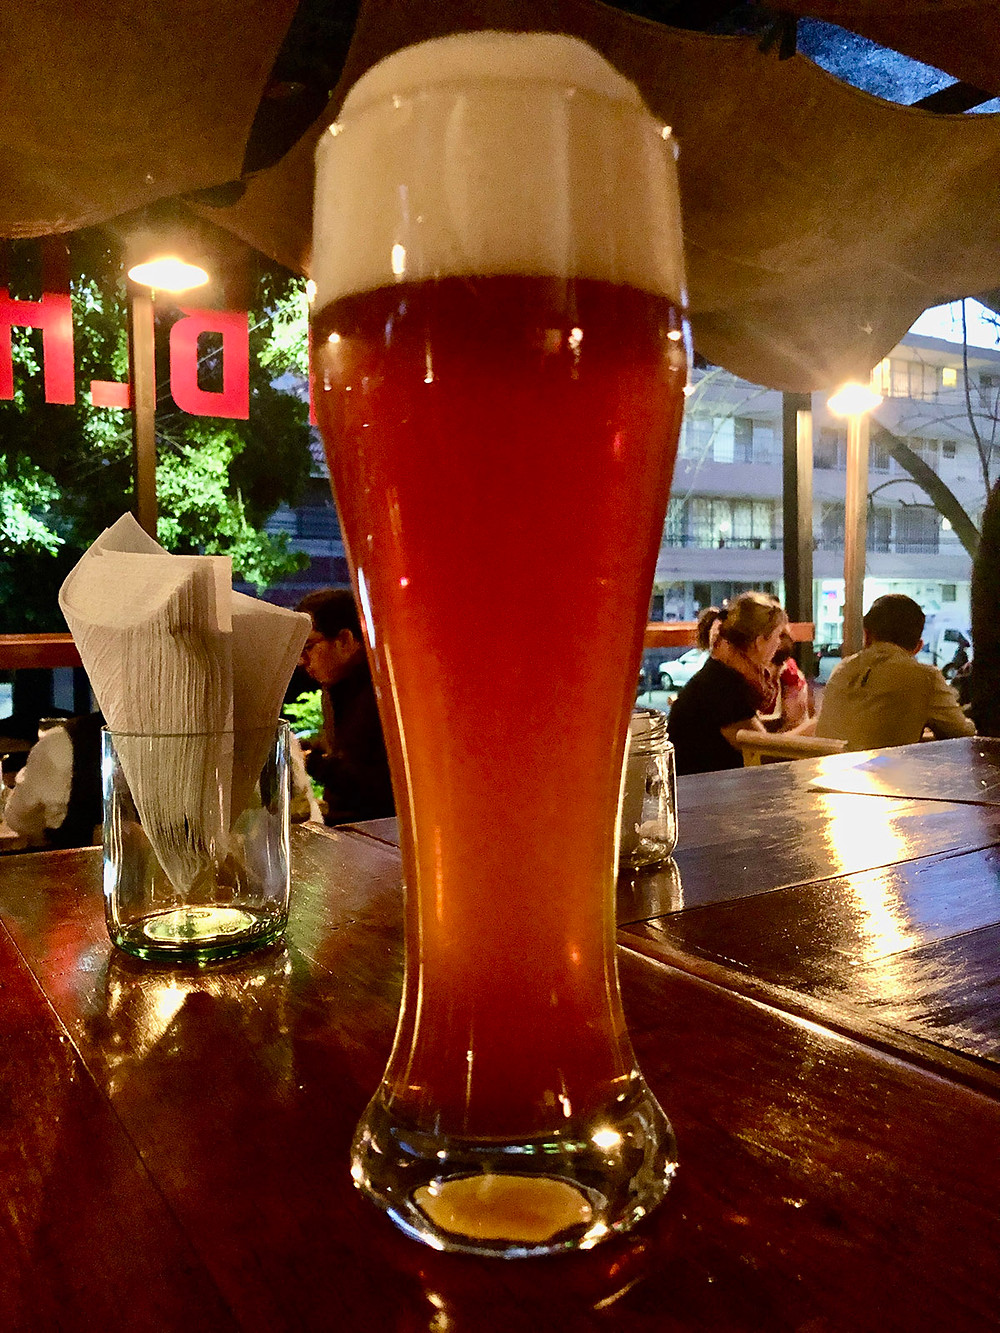 large glass of Bock beer